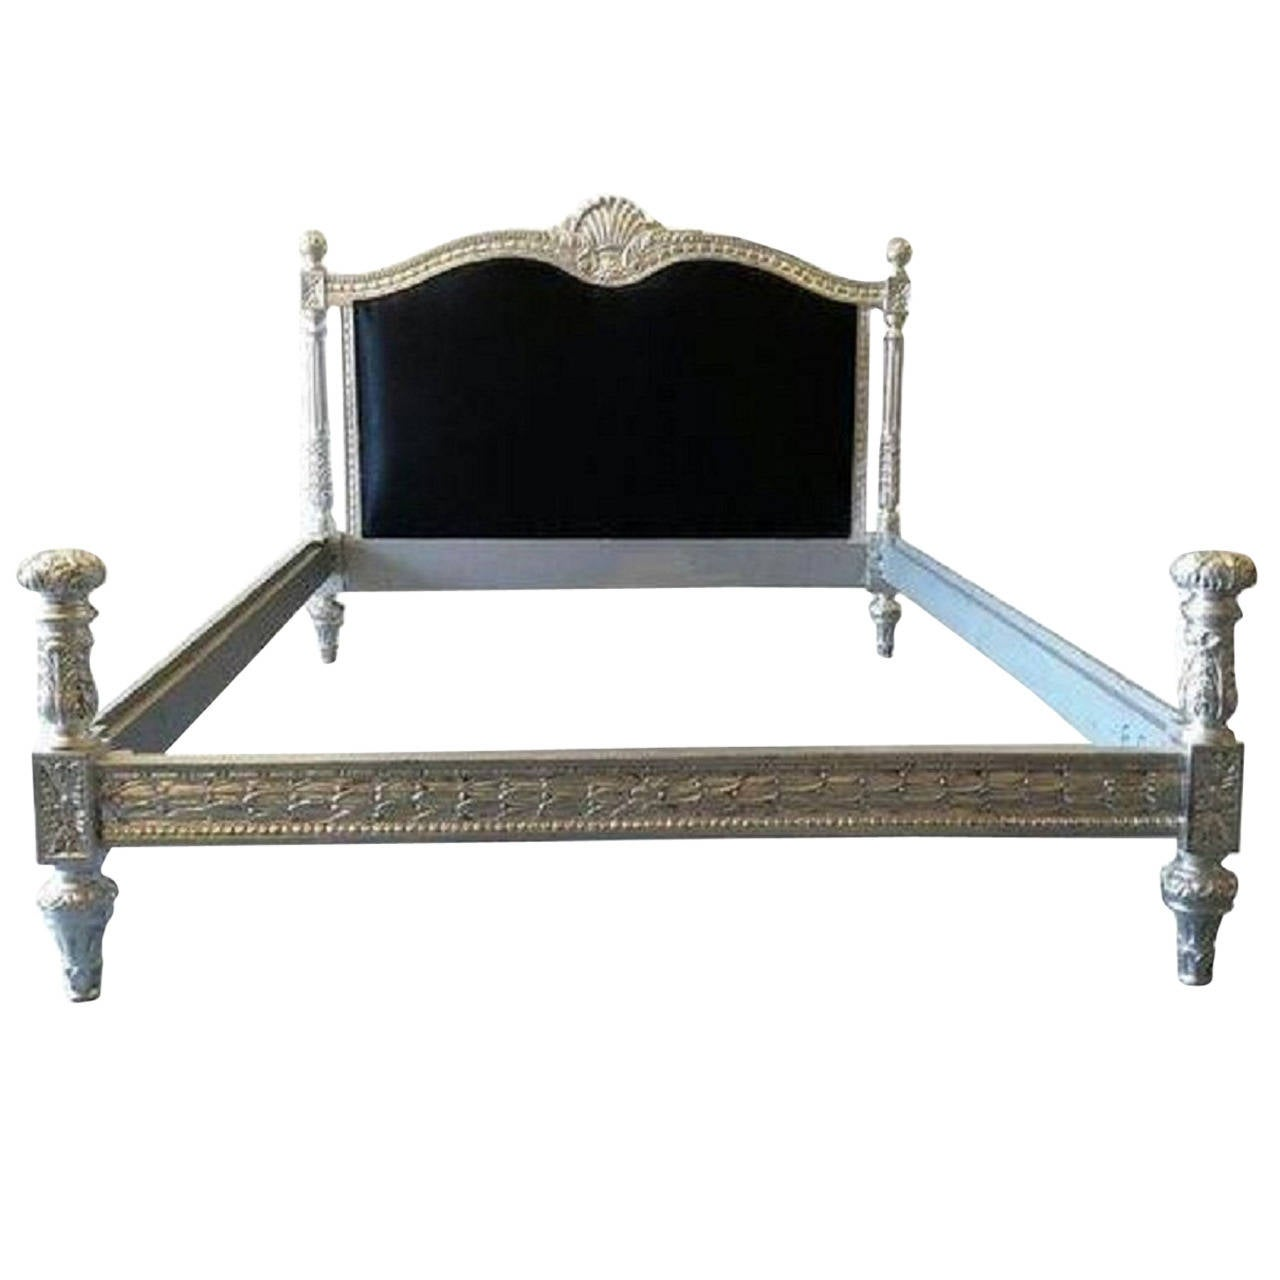 French bed silver and black velvet in louis xv baroque for Baroque style bed